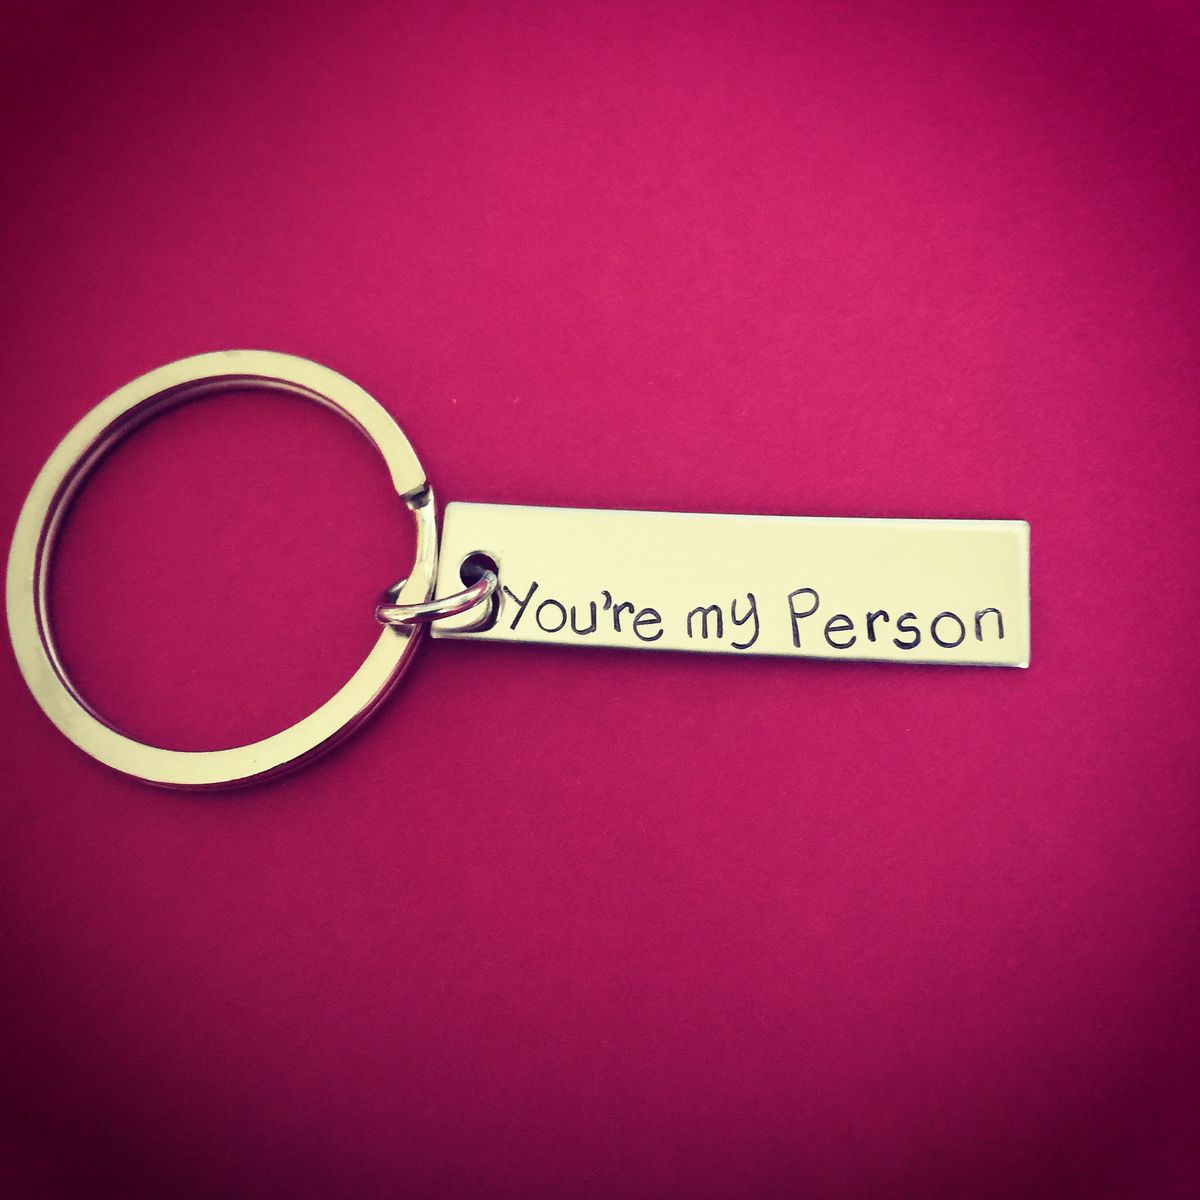 You're my person Keychain, Rectangle Keychain - product images  of